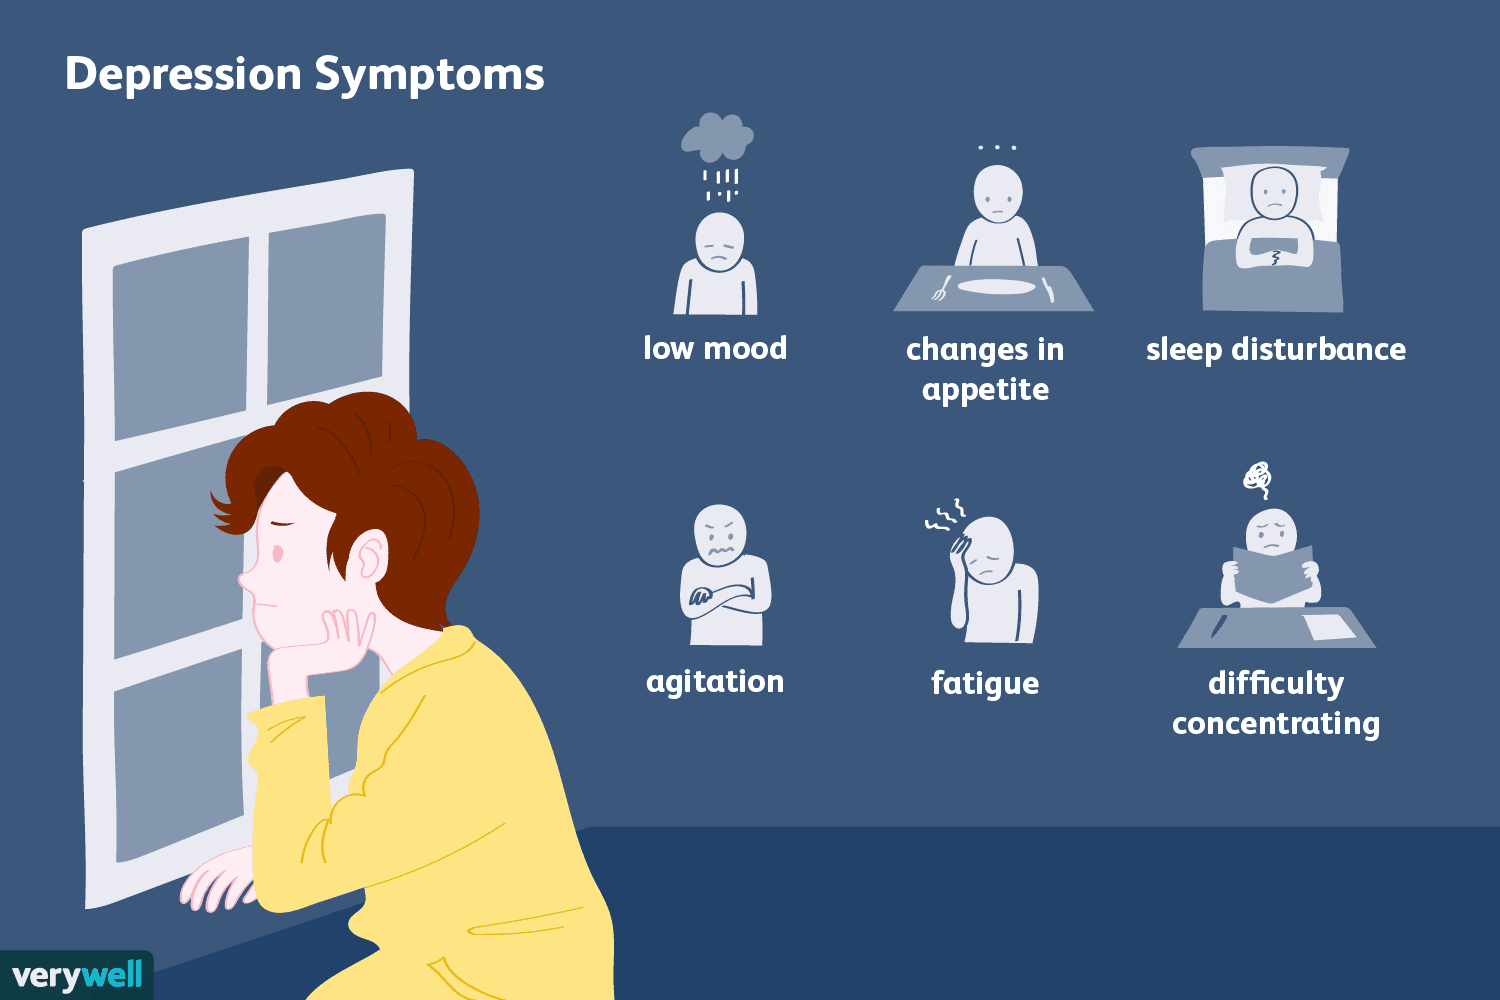 healthyguruji.com/symptoms of depression